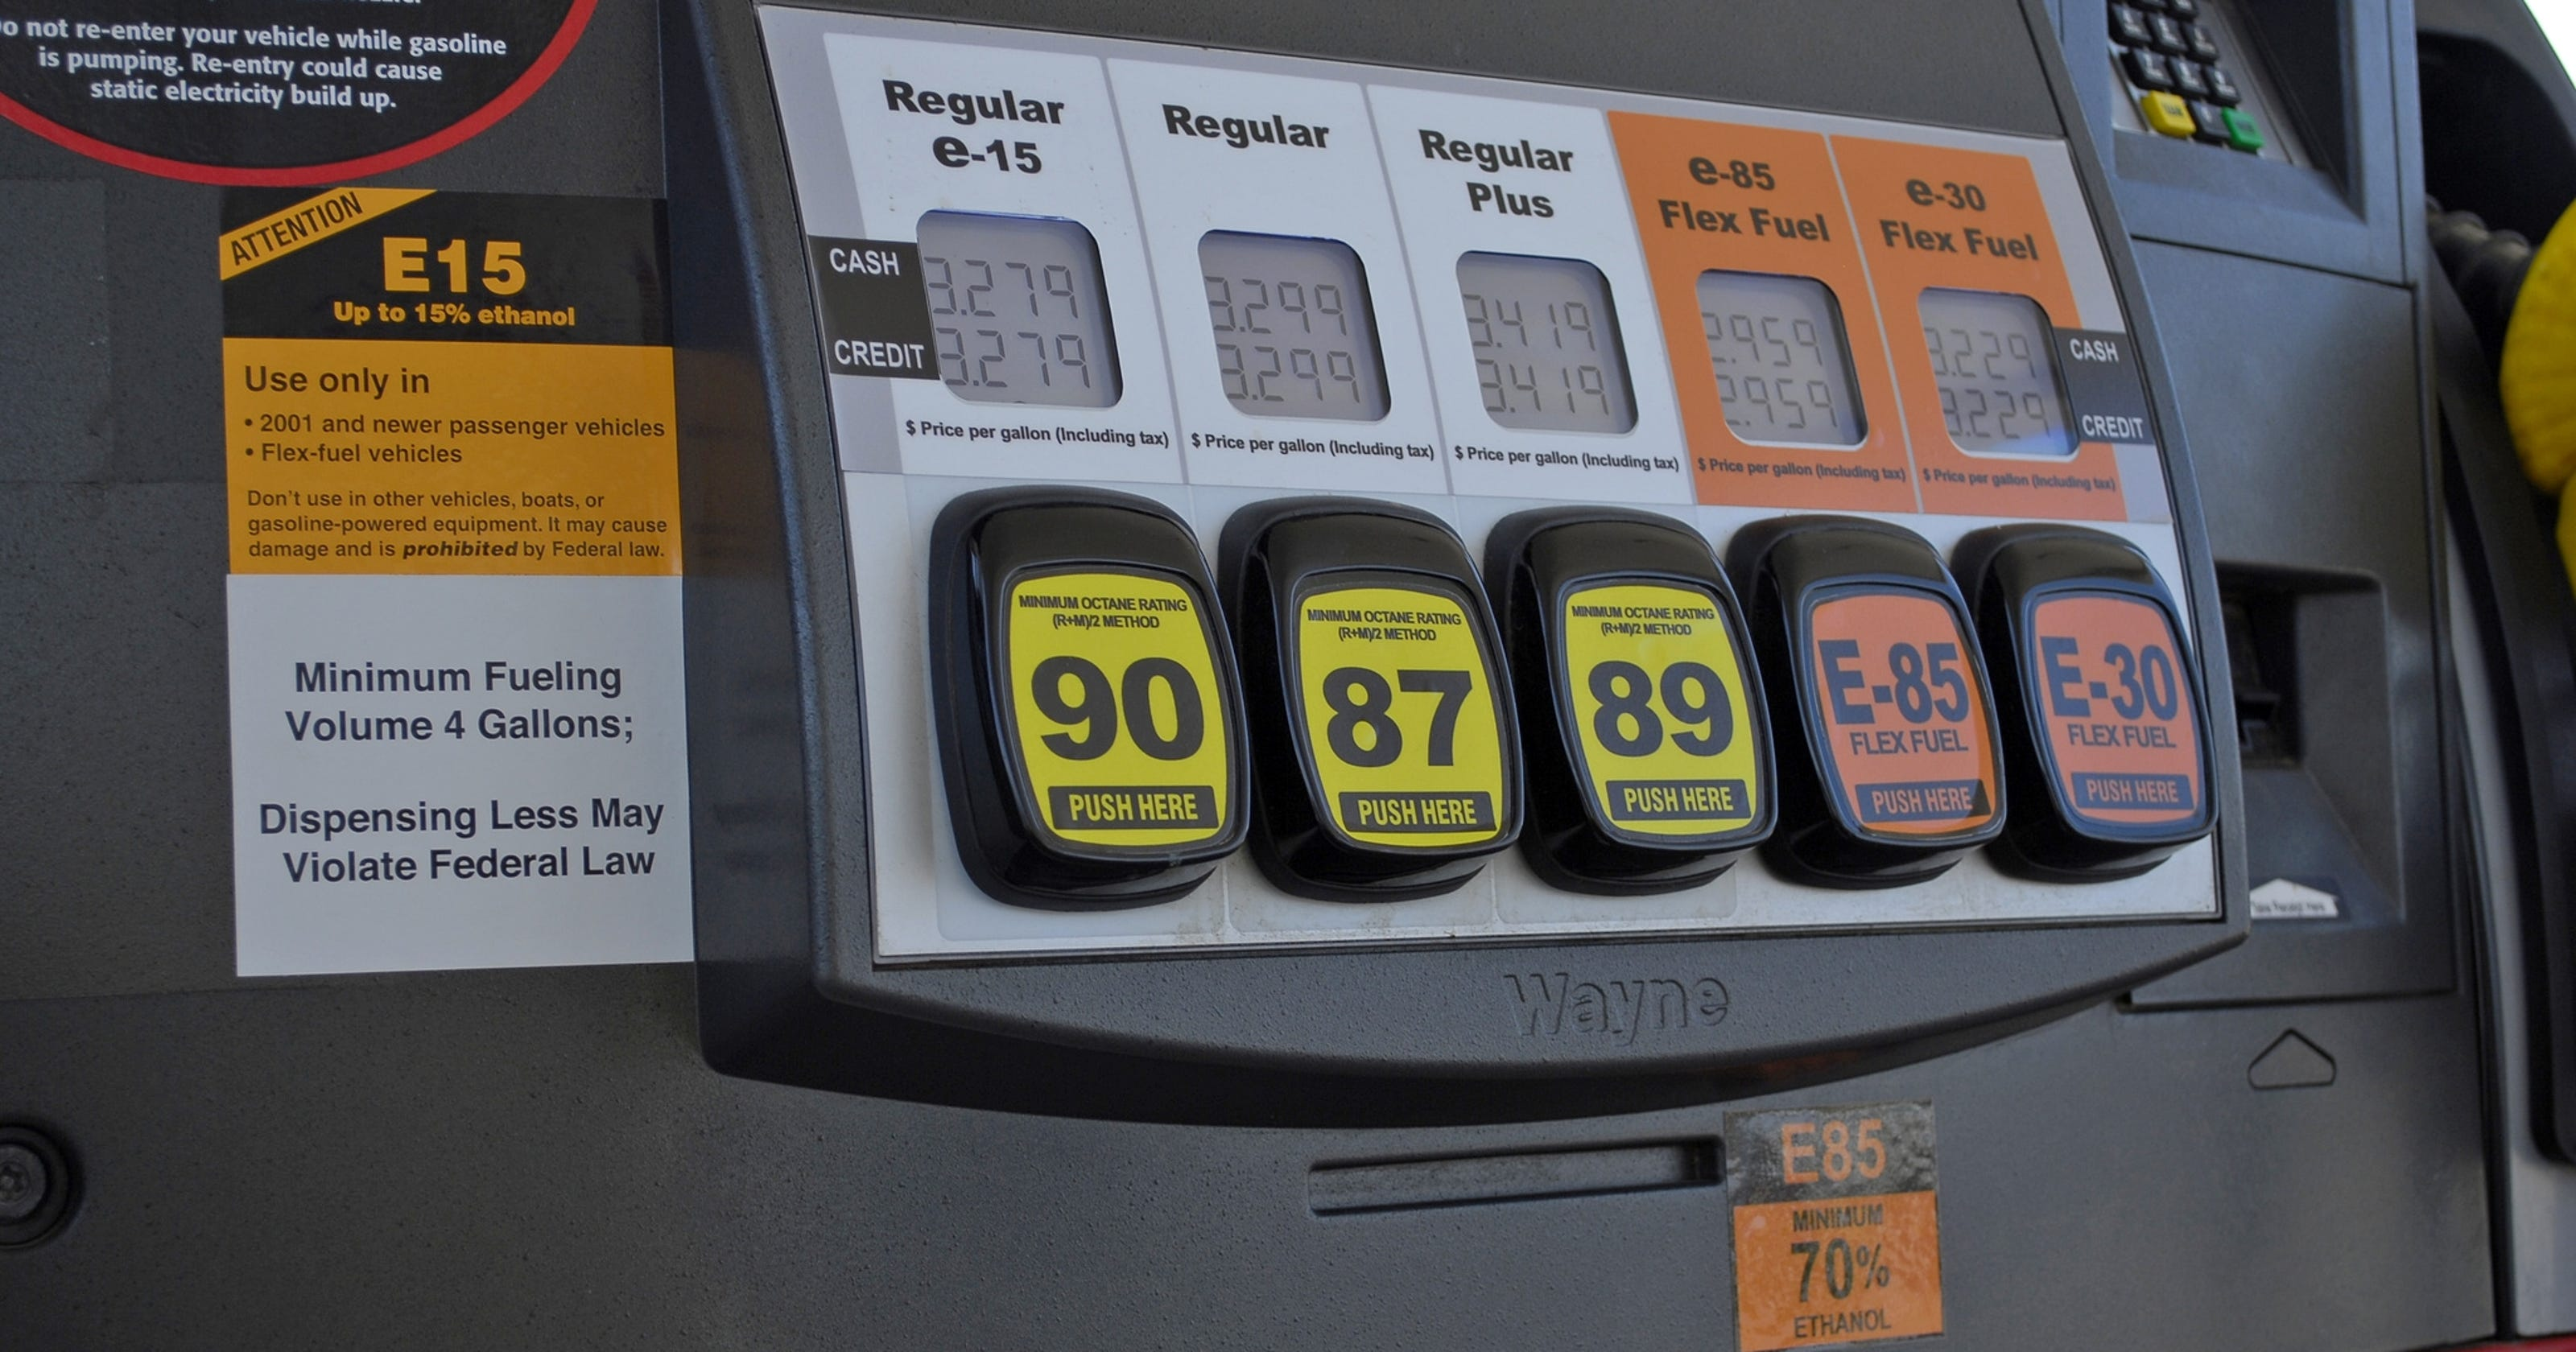 Flex fuel can save on gas money